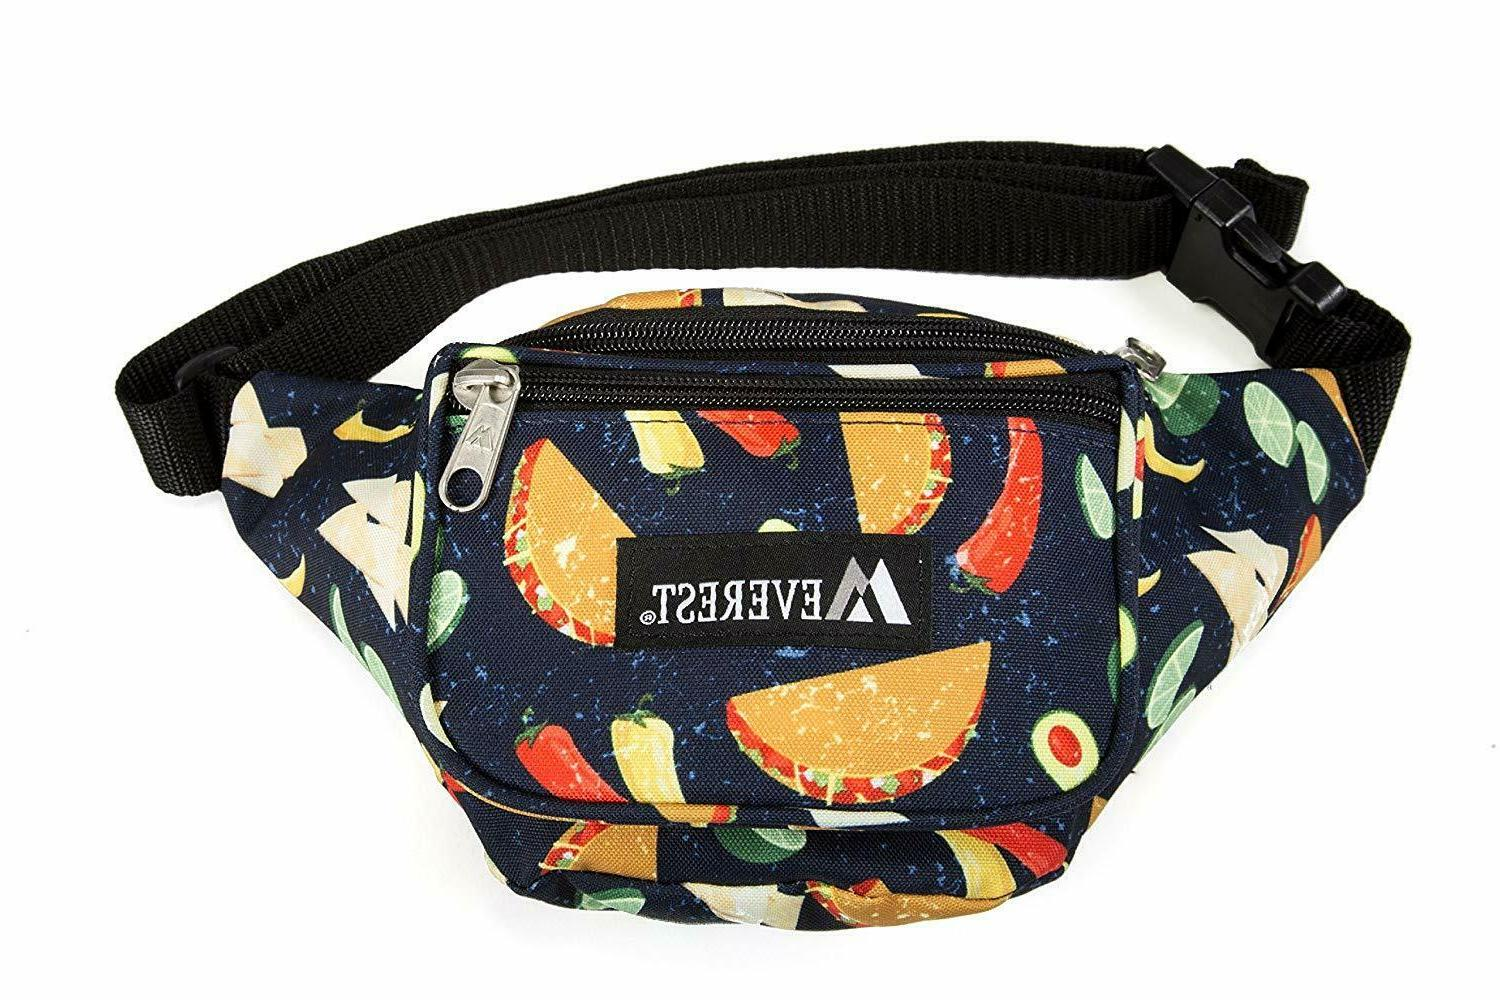 p044kd tacos signature pattern waist pack tacos